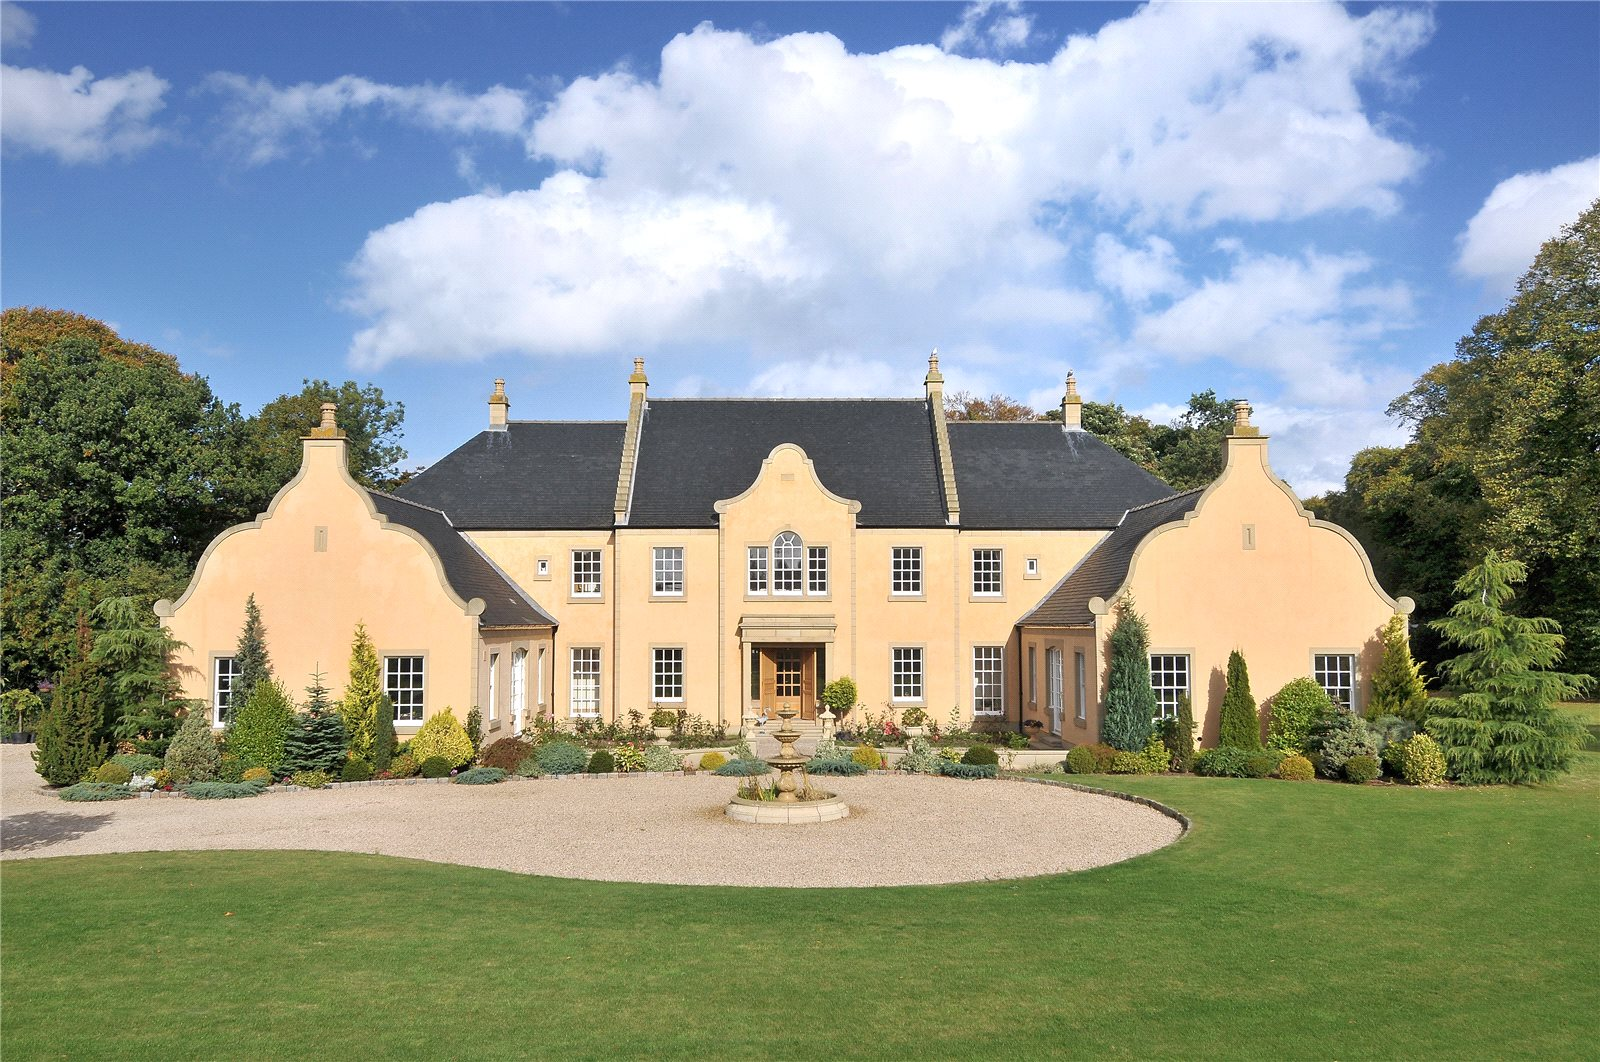 Single Family Home for Sale at Inveresk Village, Musselburgh, Midlothian, EH21 Midlothian, Scotland